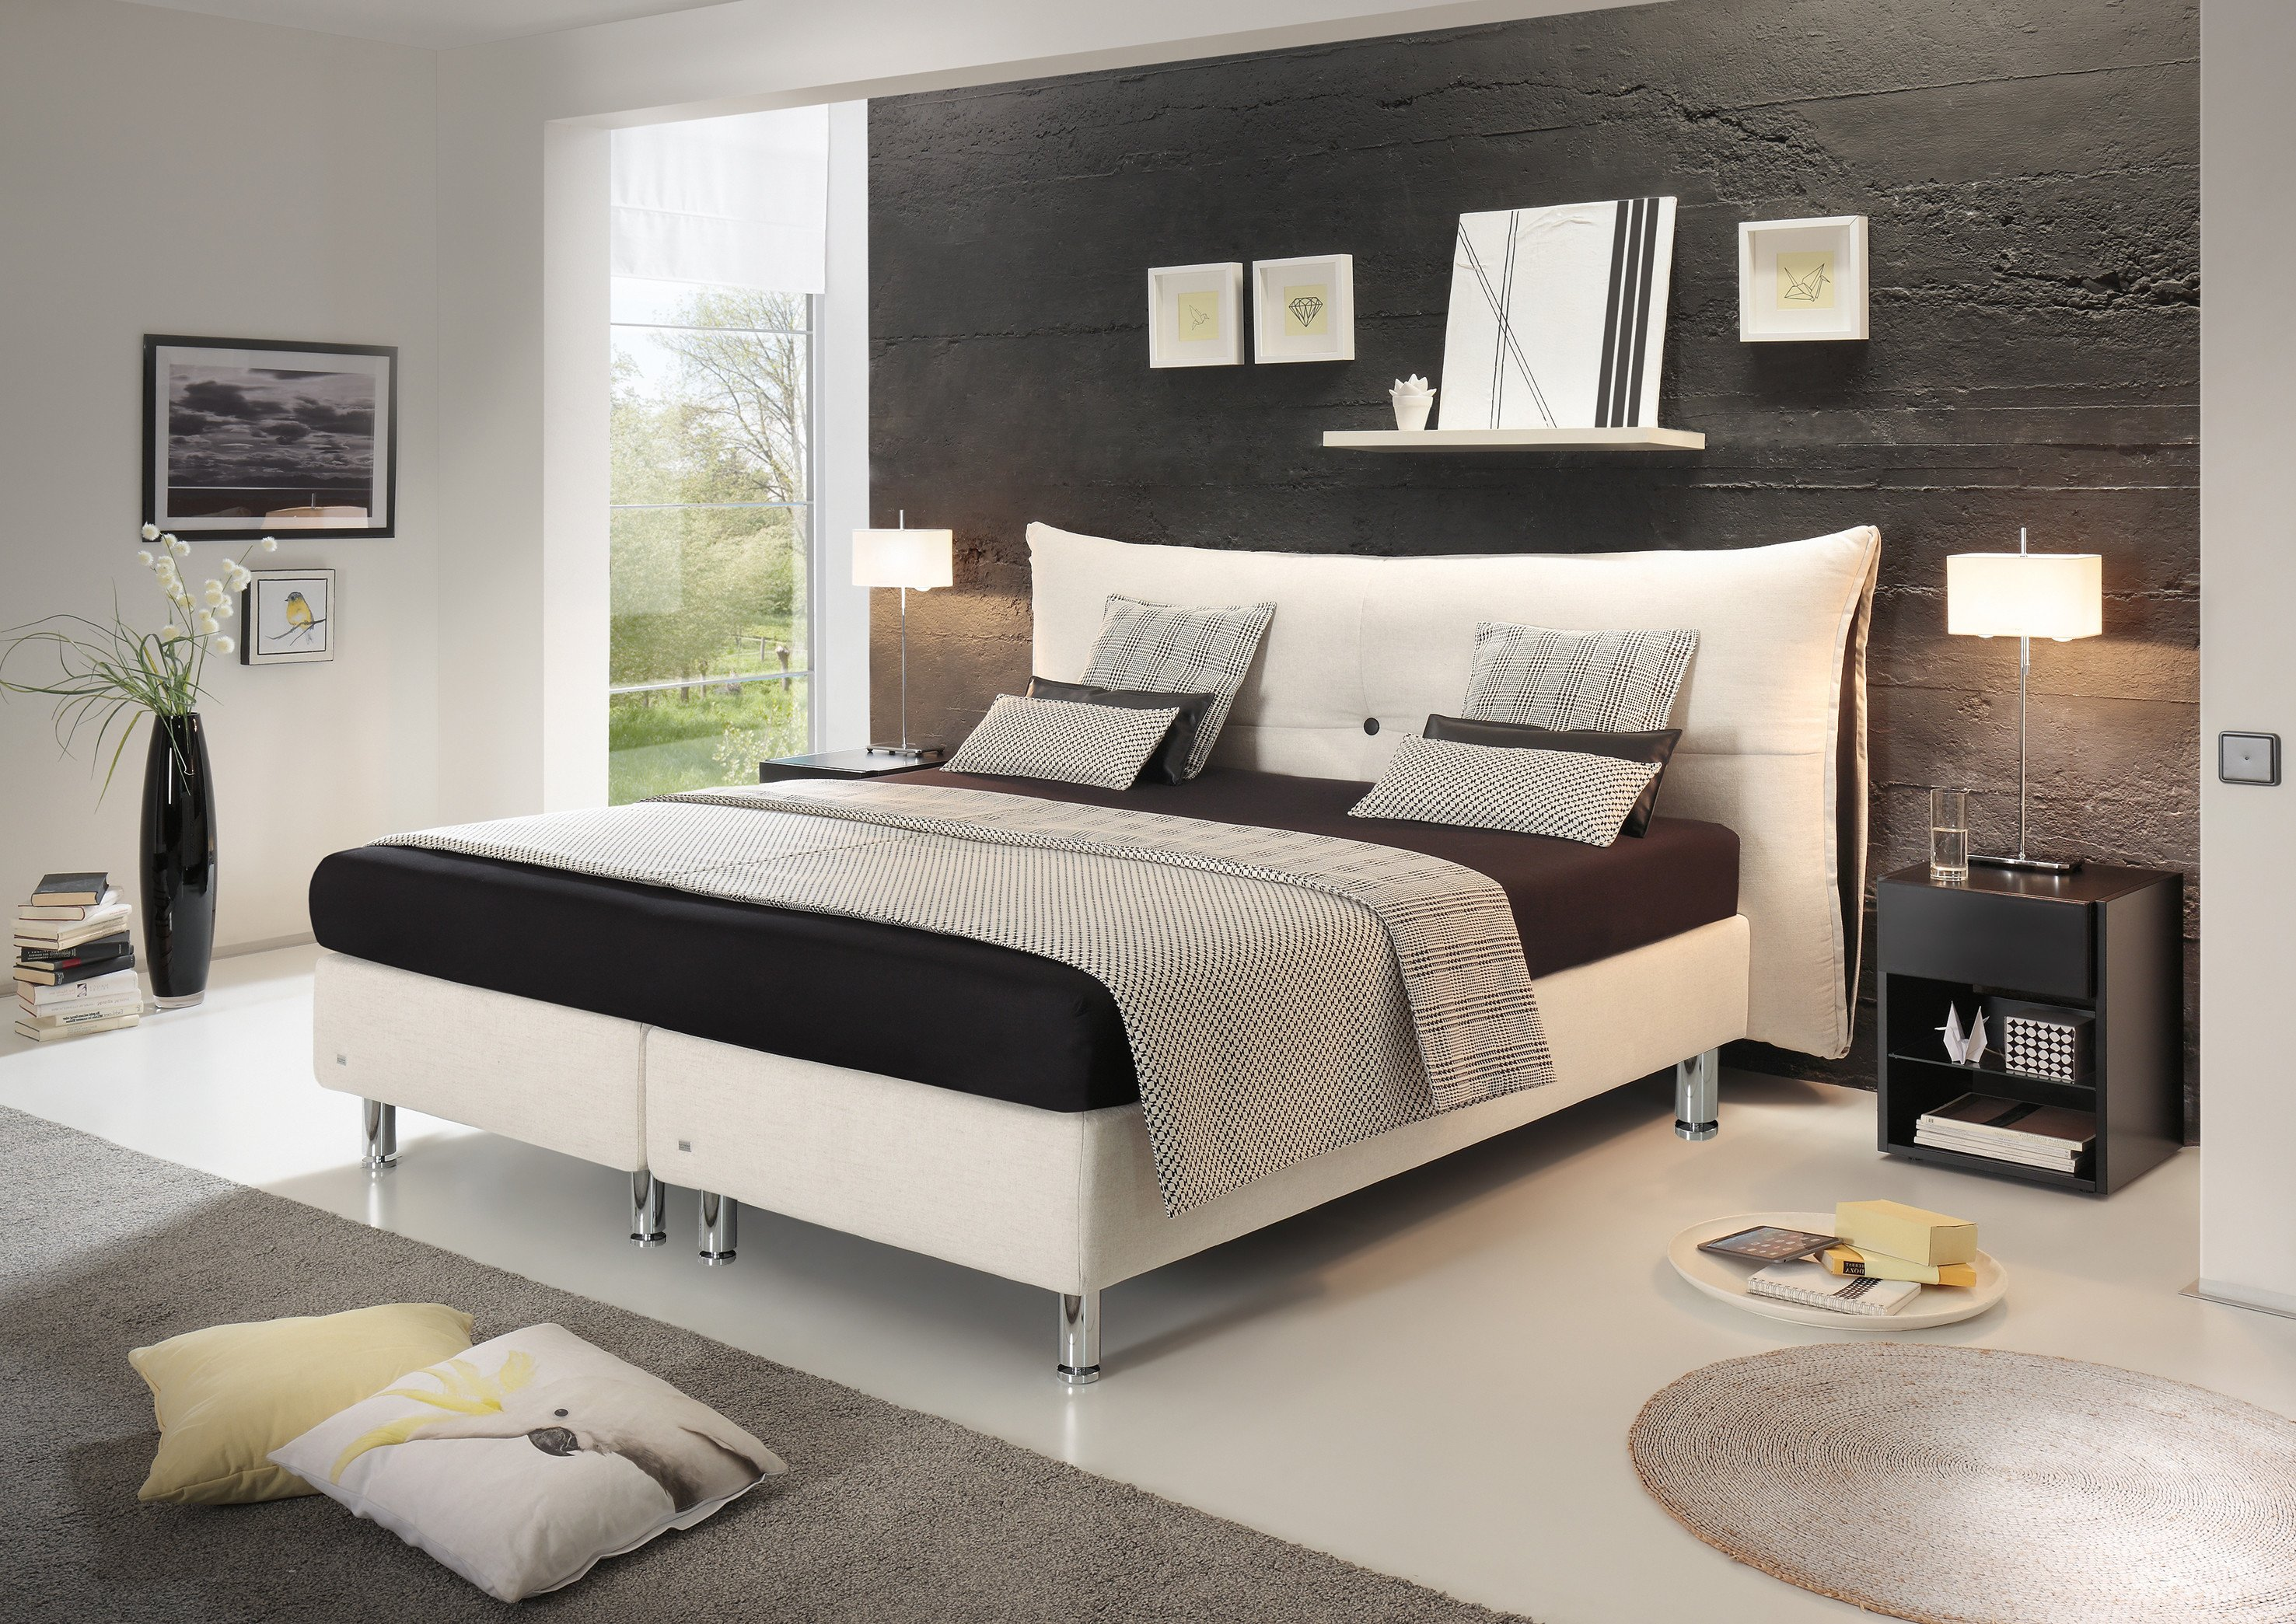 ruf santino boxspringbett in natur schwarz m bel letz. Black Bedroom Furniture Sets. Home Design Ideas